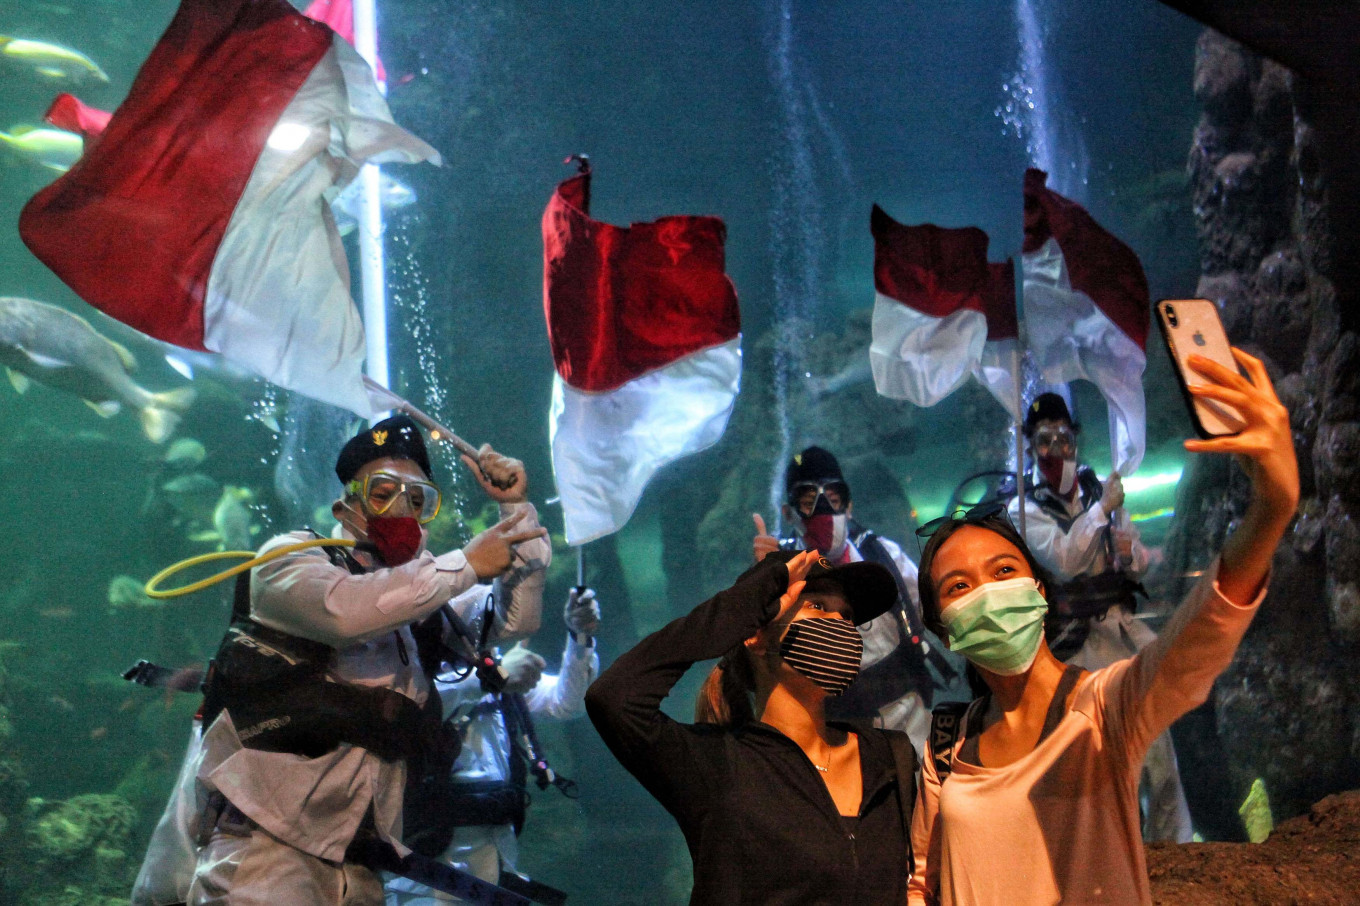 Deep dive: Visitors take a wefie as divers hold a rehearsal of an underwater flag-waving ceremony at Seaworld Indonesia in Ancol, North Jakarta, on Saturday. The annual event was held to commemorate the 75th anniversary of Indonesia's independence. JP/Seto Wardhana